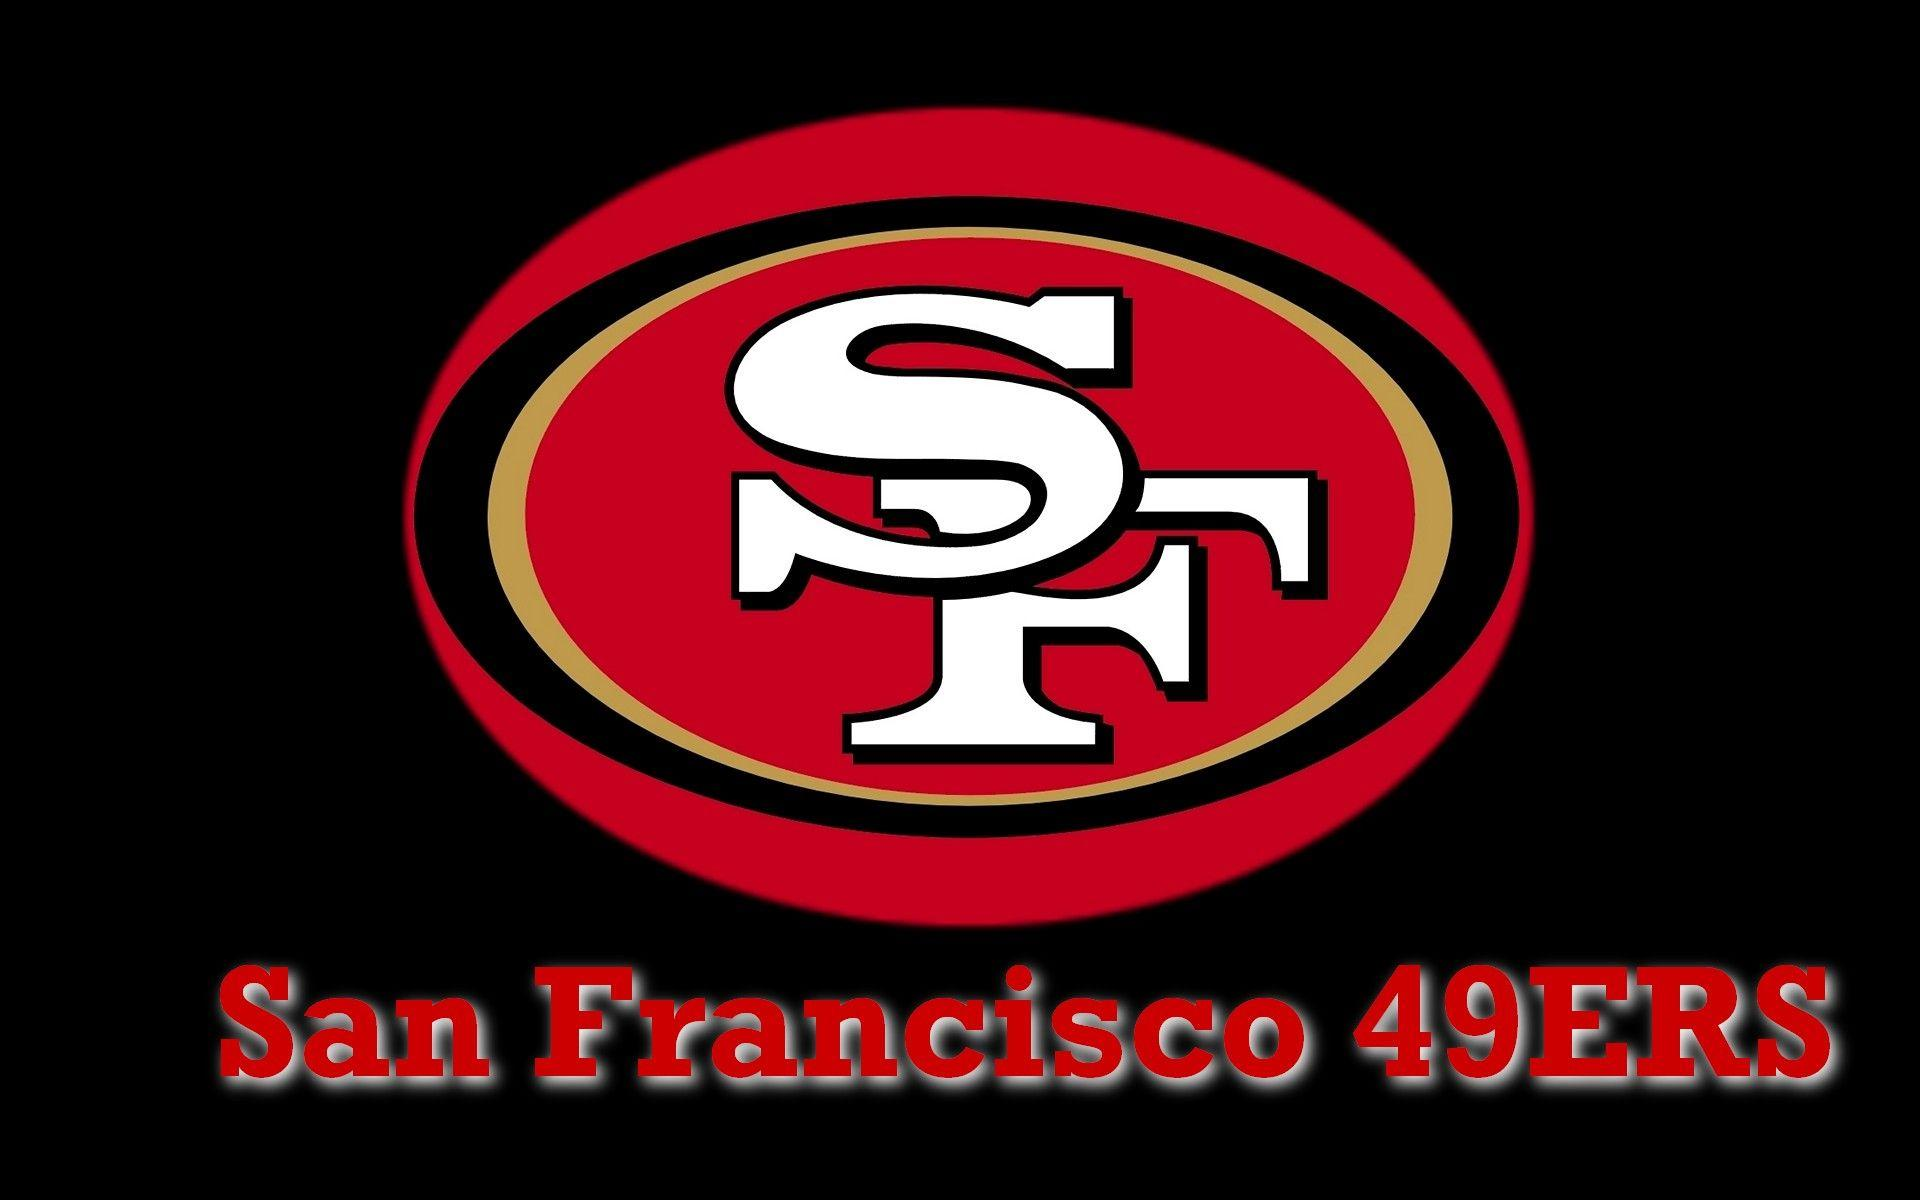 49er Wallpaper Girl San Francisco 49ers Wallpapers 2015 Wallpaper Cave